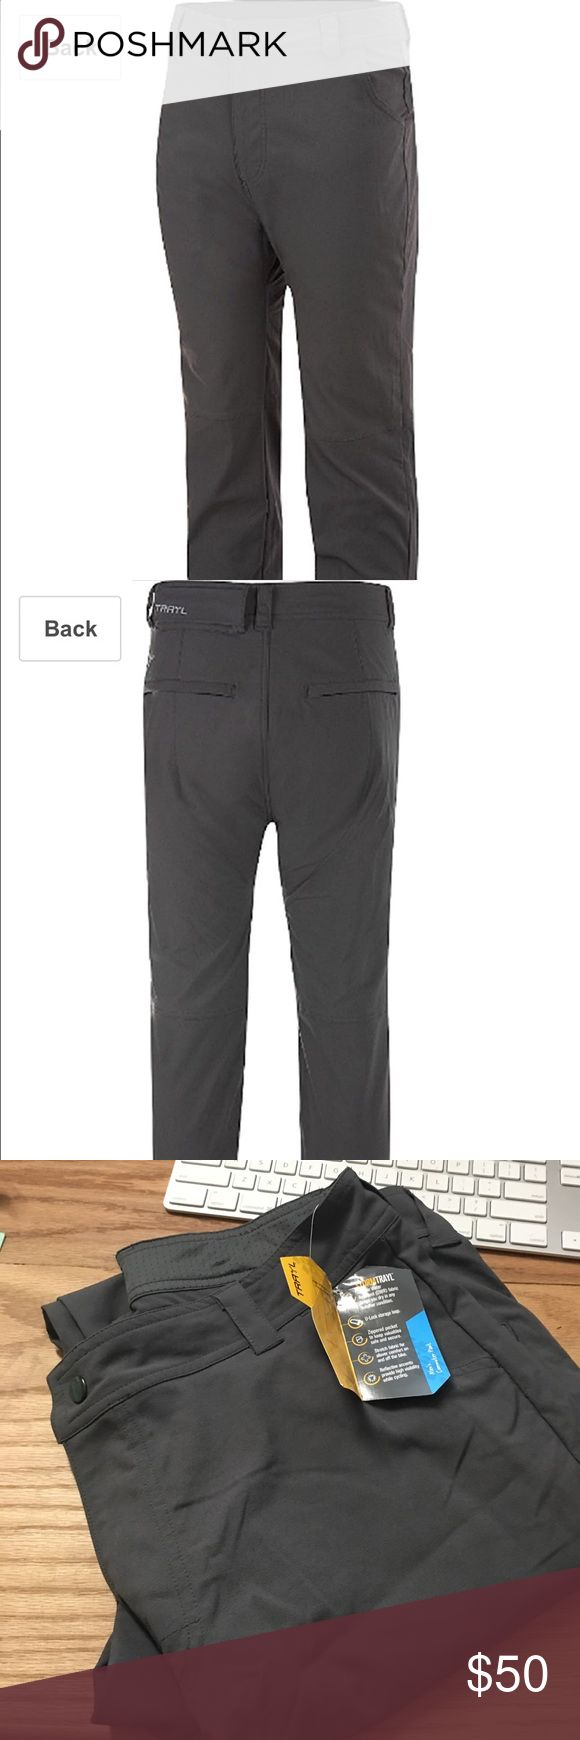 Commuter Cycling & outdoor pants Durable Water Repellent fabric keeps you dry in any weather condition. U-Lock storage loop. Zippered pocket to keep valuables safe and secure. Stretch fabric for allover comfort on and off the bike. Reflective accents provide high visibility while cycling. TRAYL Pants